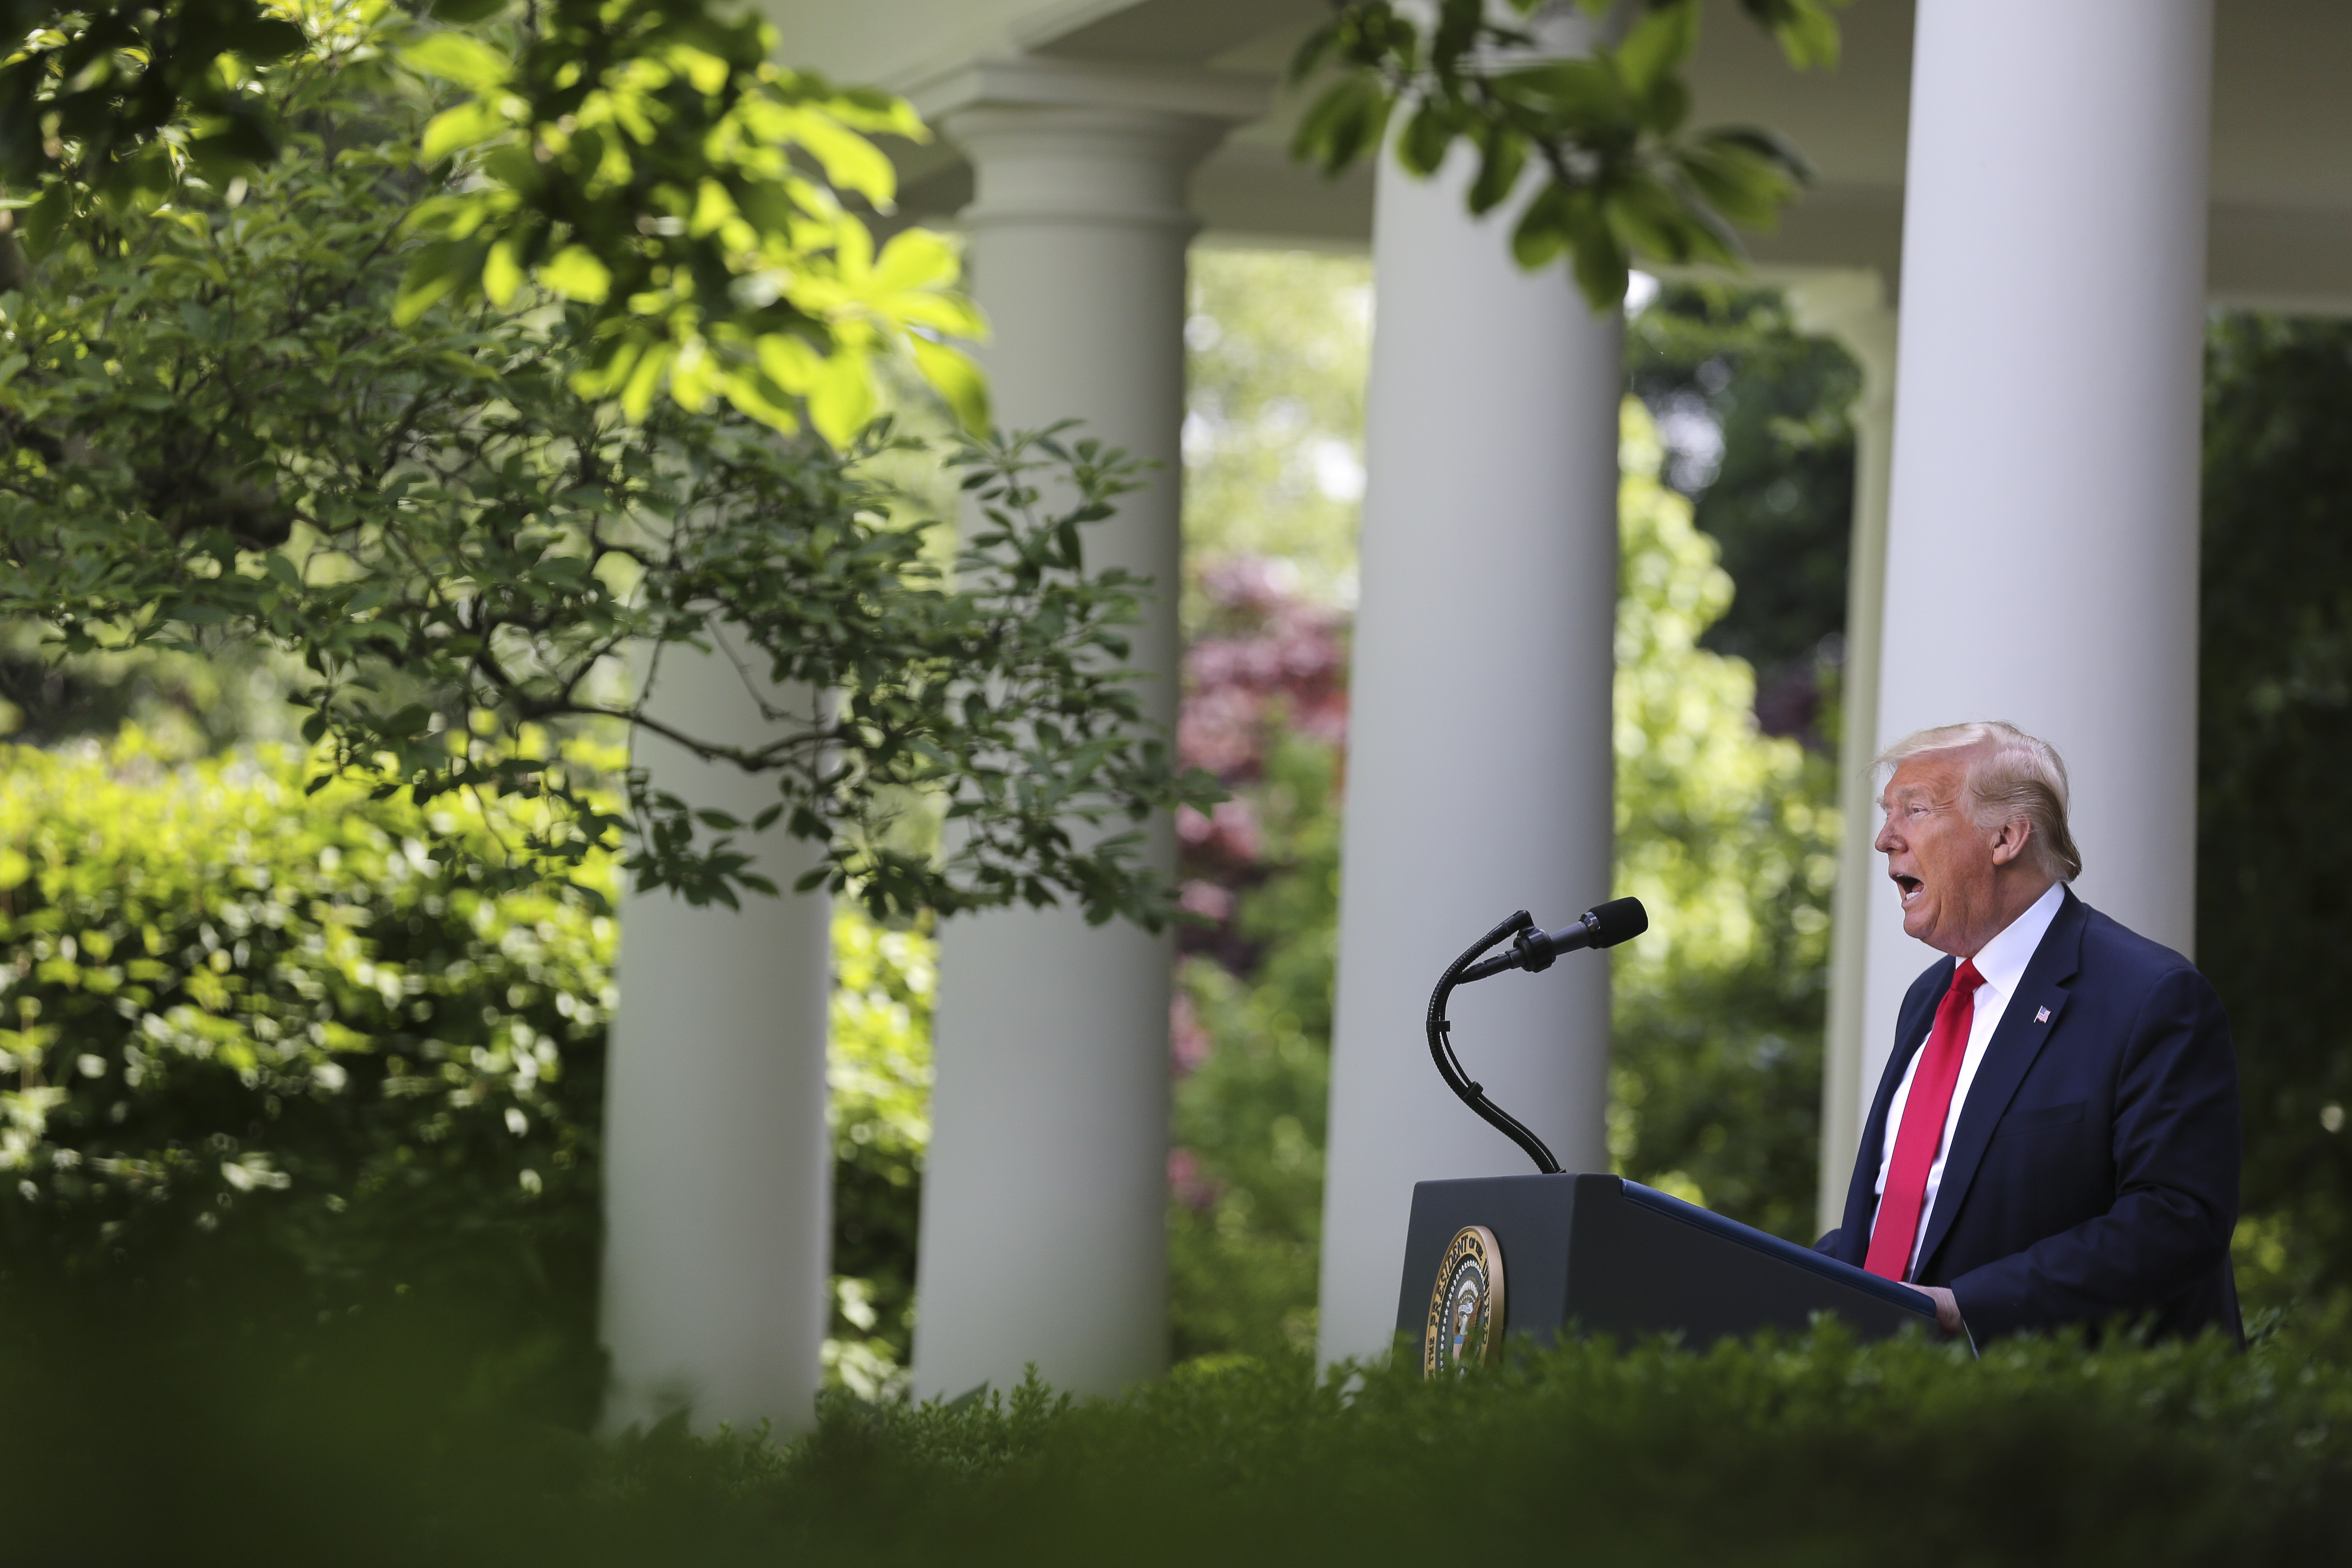 President Donald Trump speaks during an event at the White House in Washington, D.C. on May 26, 2020.